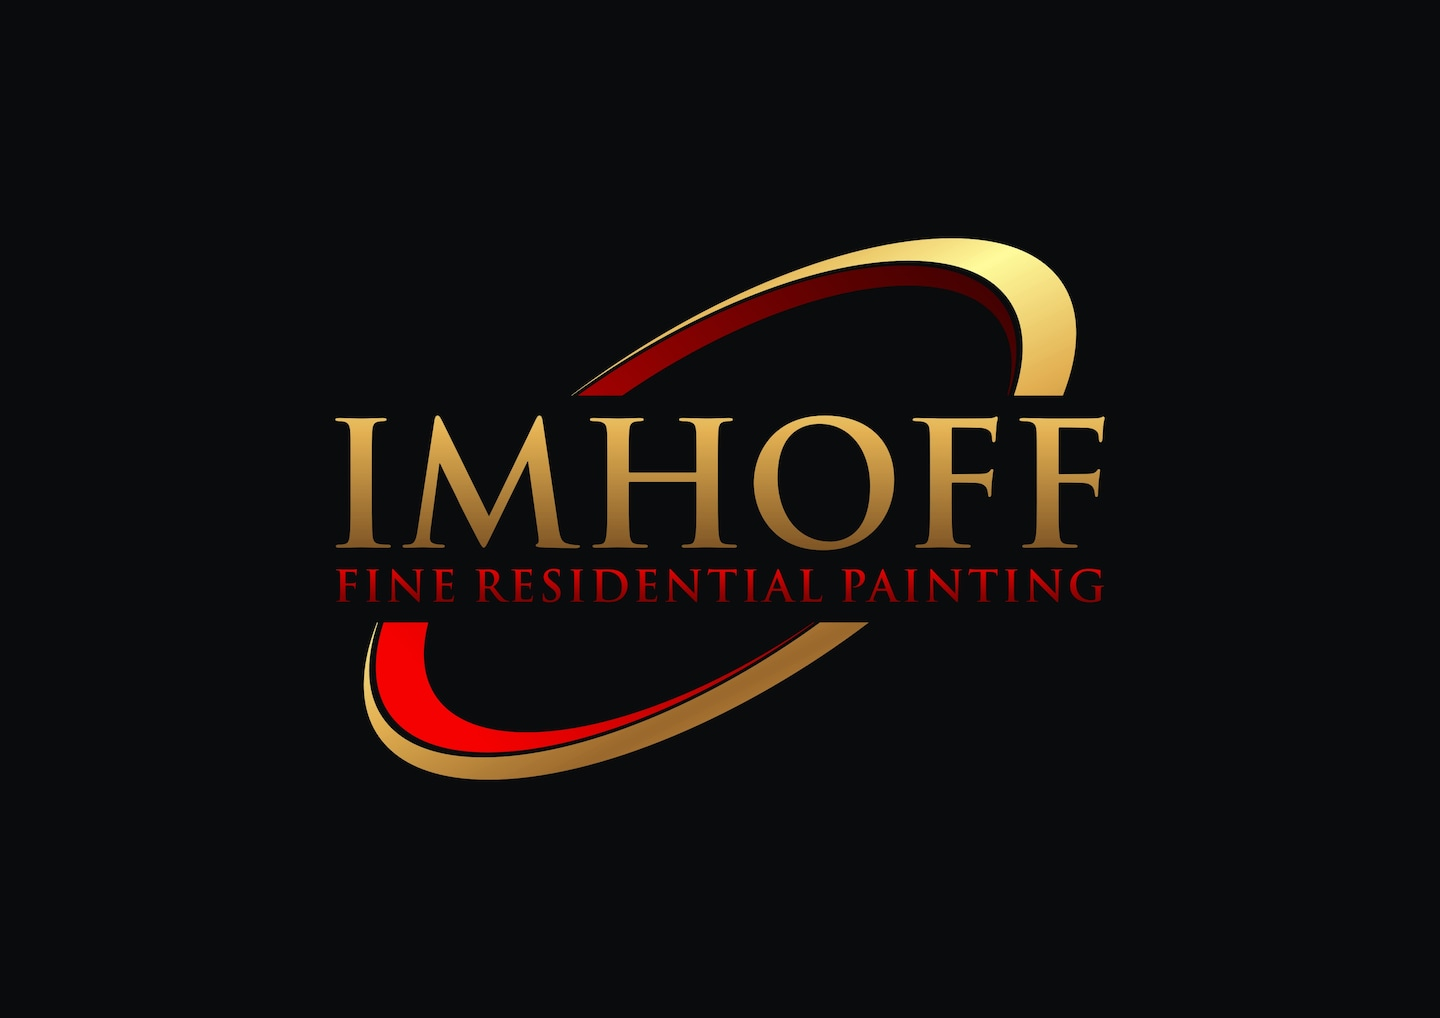 Imhoff Painting, Inc.